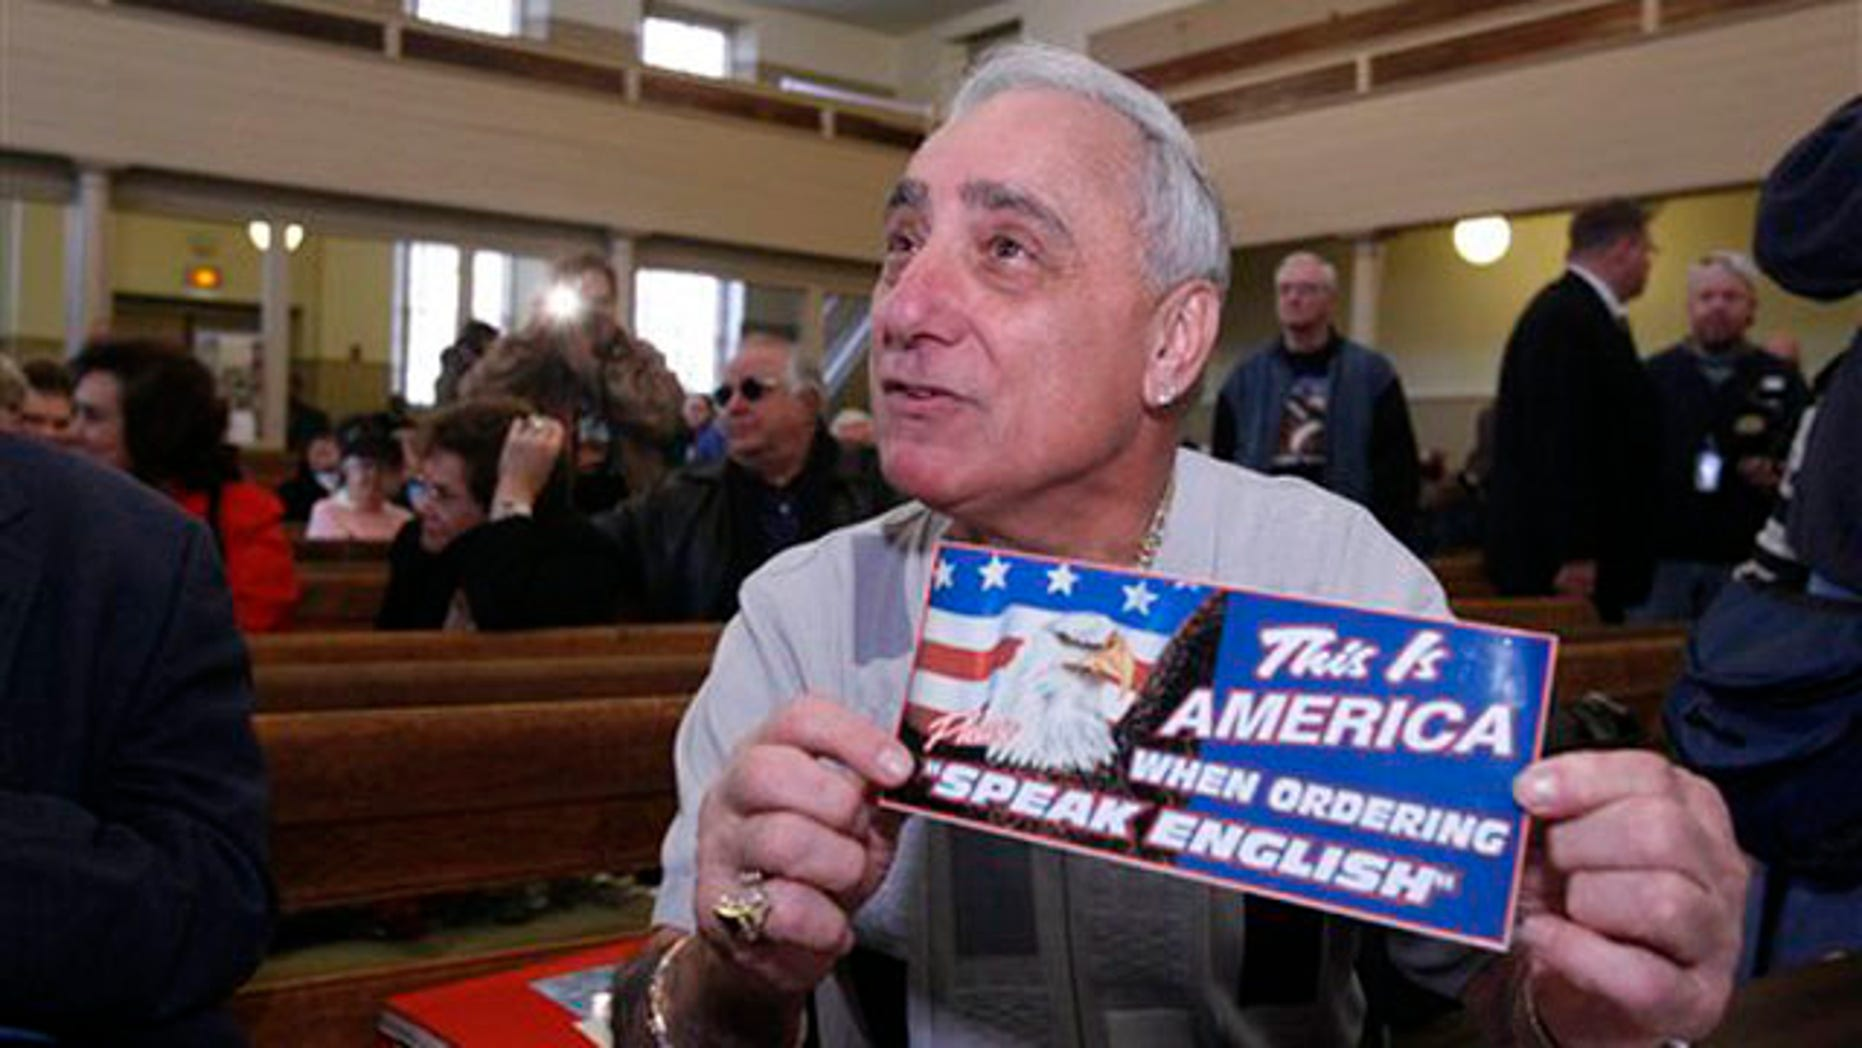 In this Dec. 14, 2007 file photo, Joey Vento, owner of Geno's Steaks, displays a sign during a recess of a Commission on Human Relations hearing in Philadelphia.